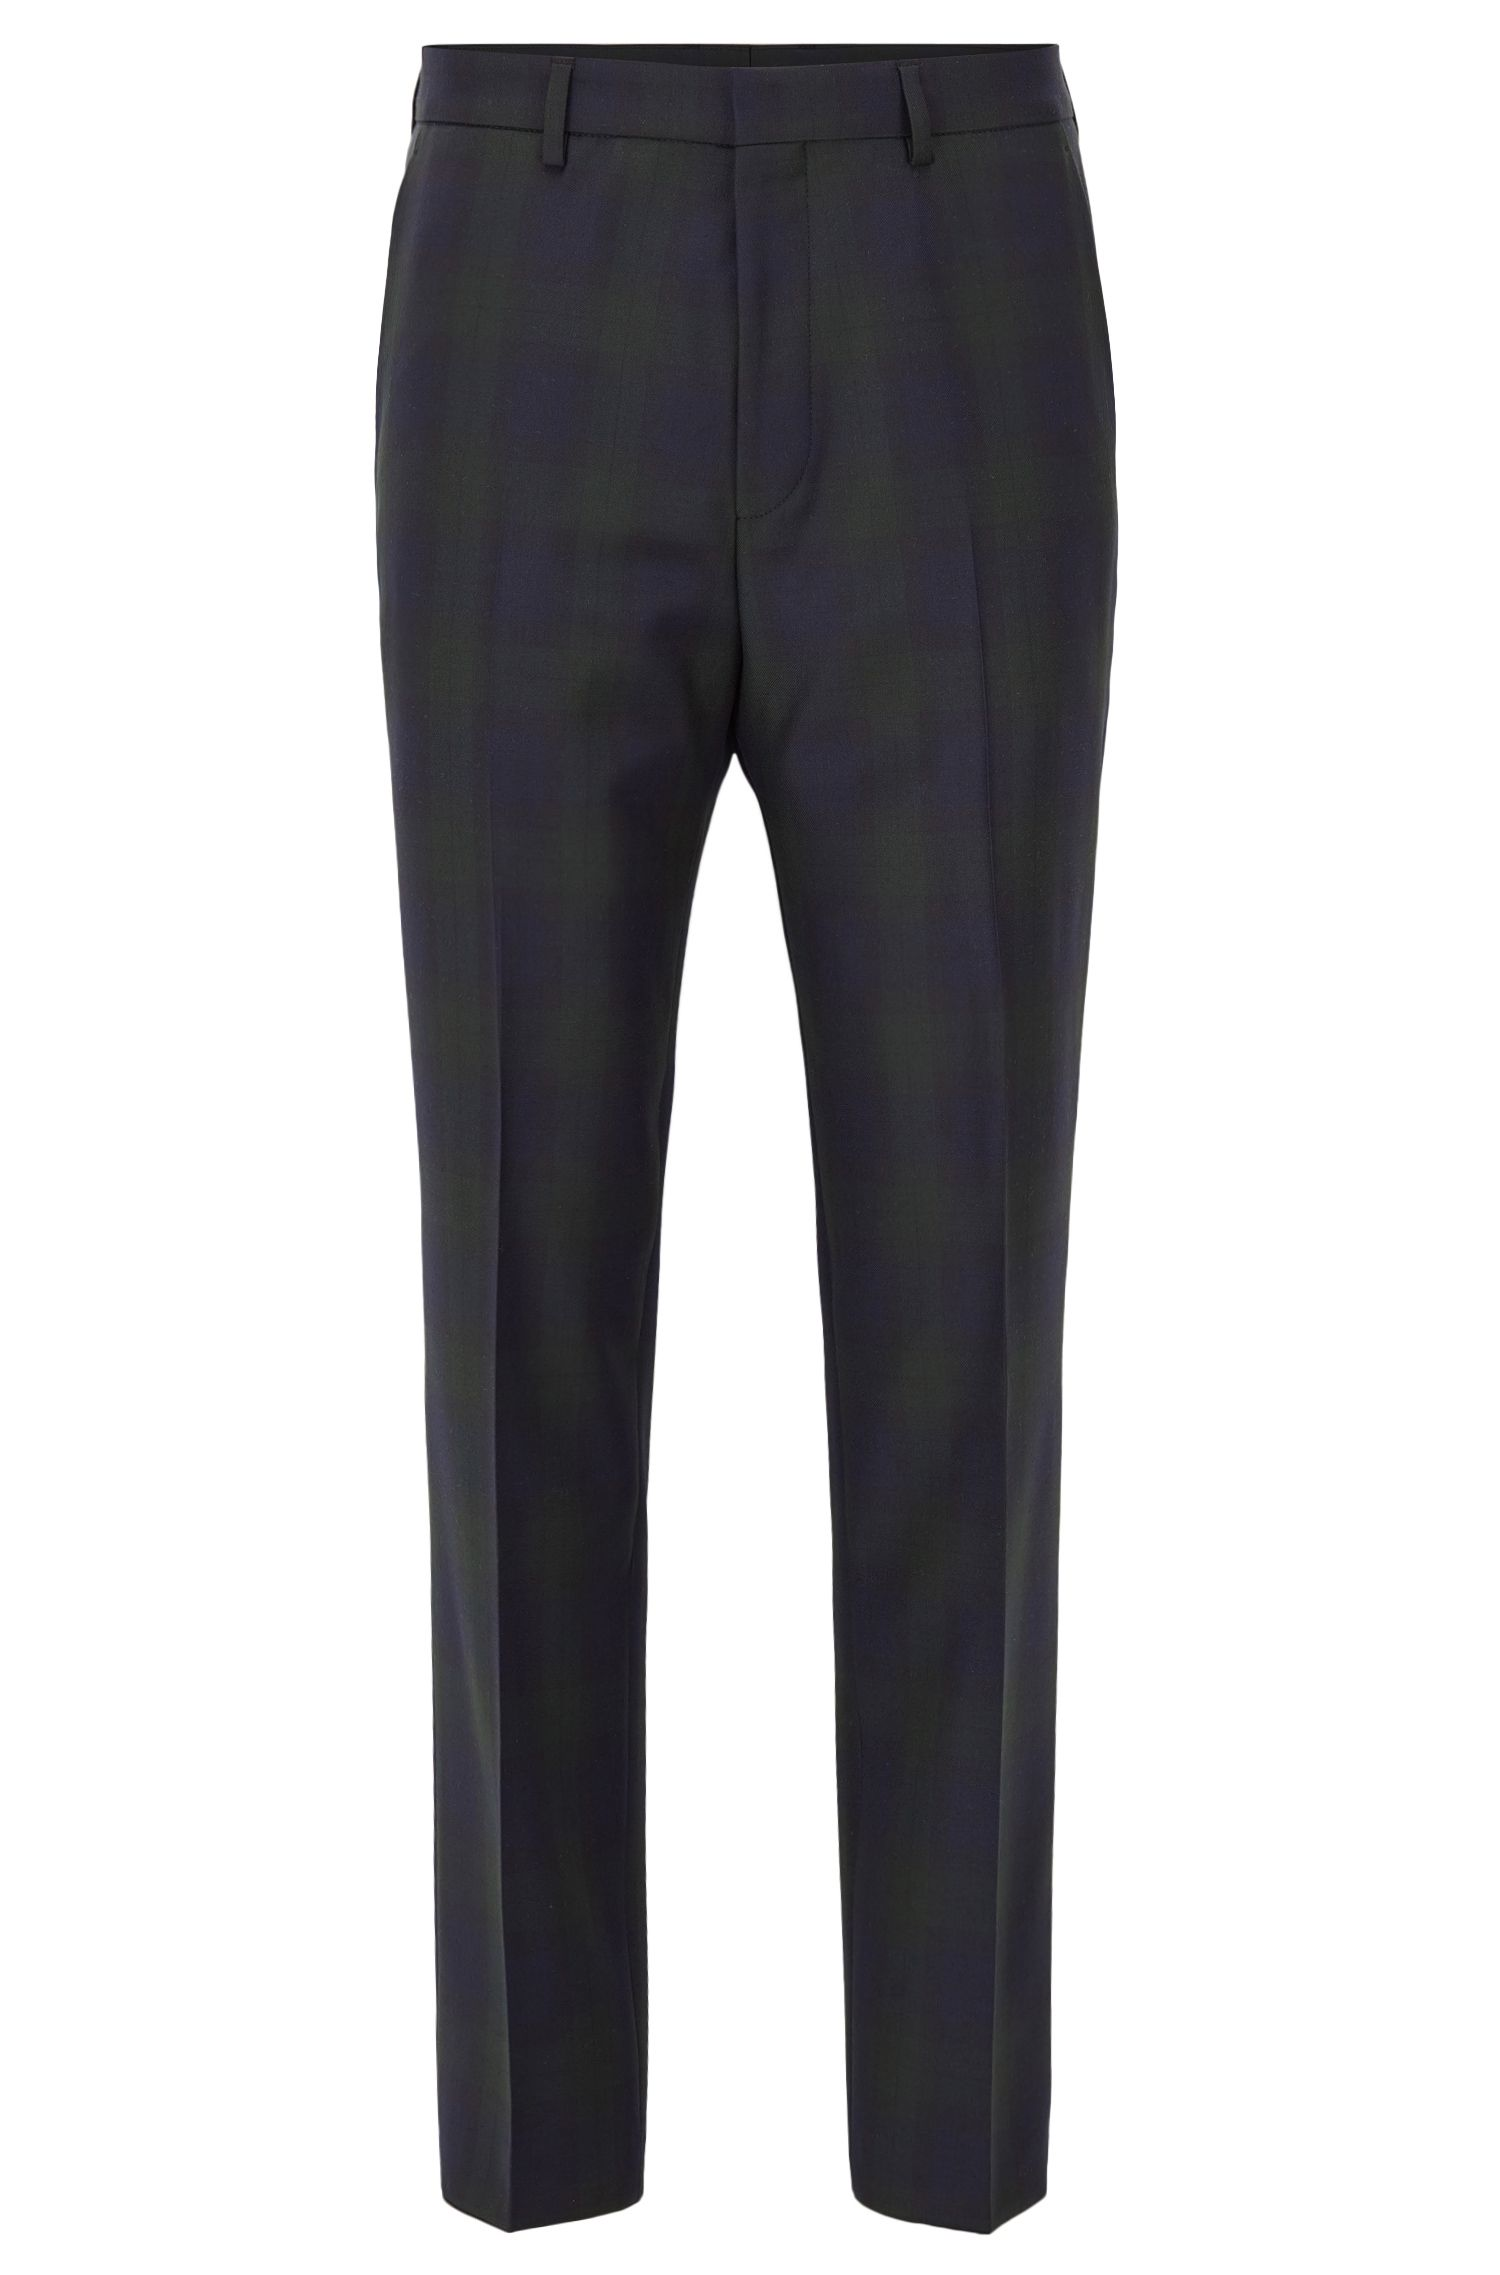 Pantalon Slim Fit en laine vierge à carreaux